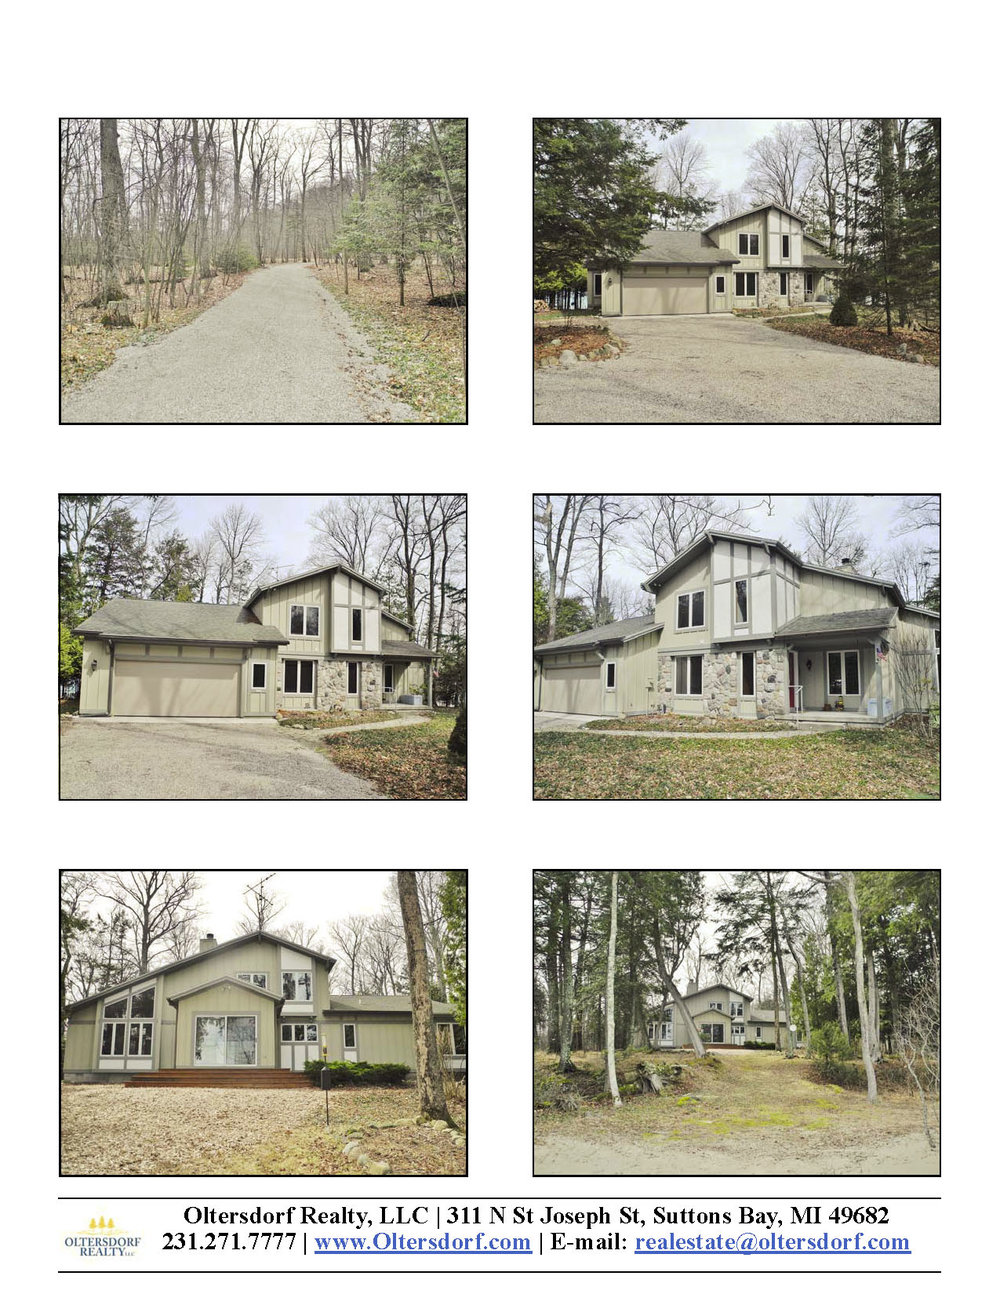 5290 N Omena Point Road, Omena, MI – 100' of Private Frontage on Grand Traverse Bay for sale by Oltersdorf Realty LLC (3) - Marketing Packet.jpg